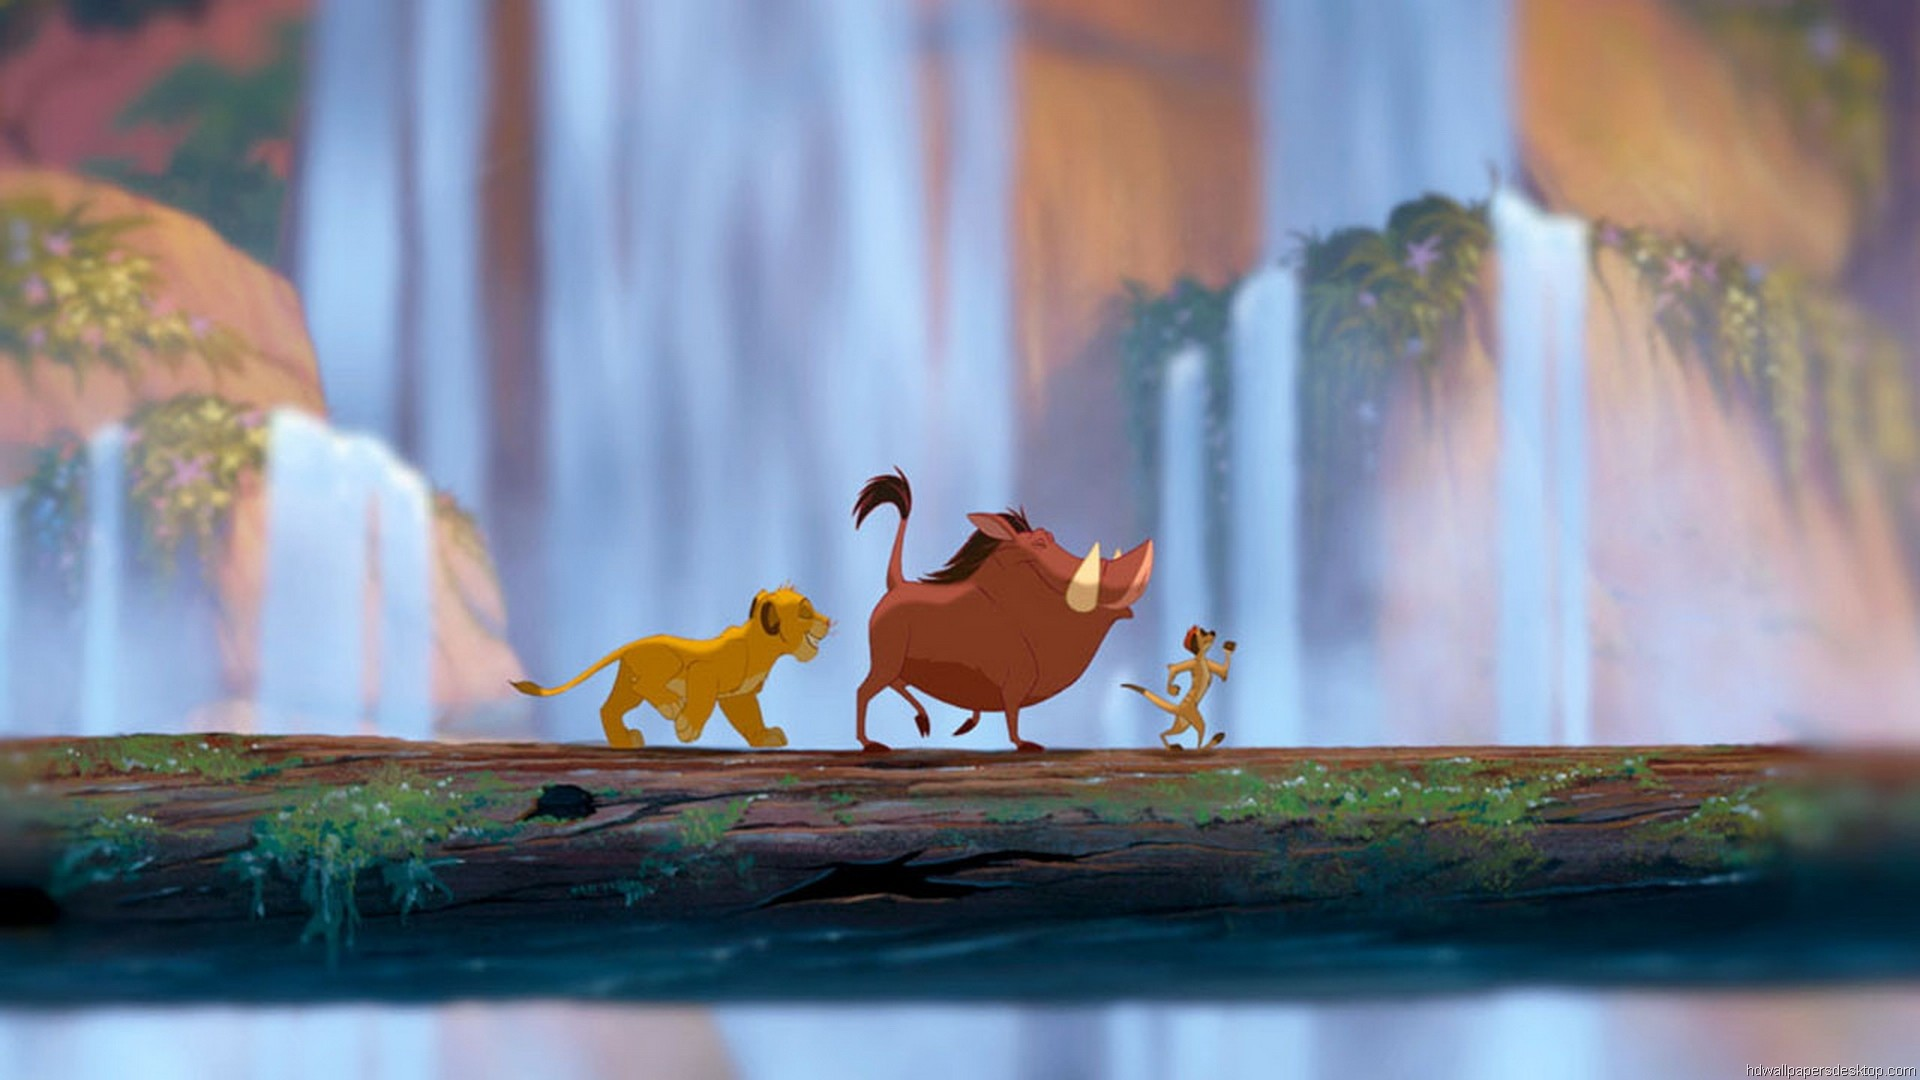 Hd Lion King Wallpaper: The Lion King Wallpapers (77+ Background Pictures